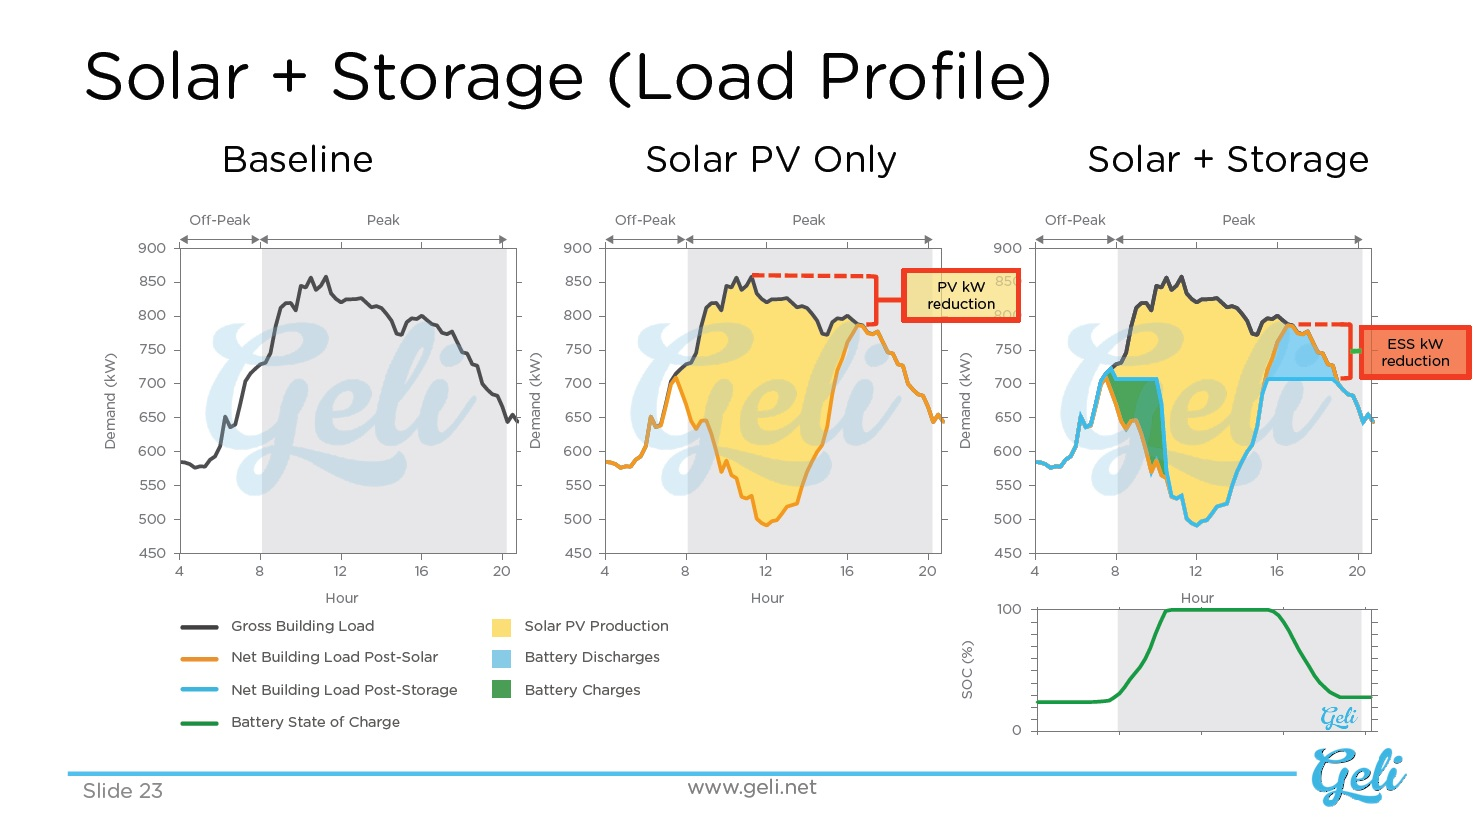 Solar + Storage Load Profile